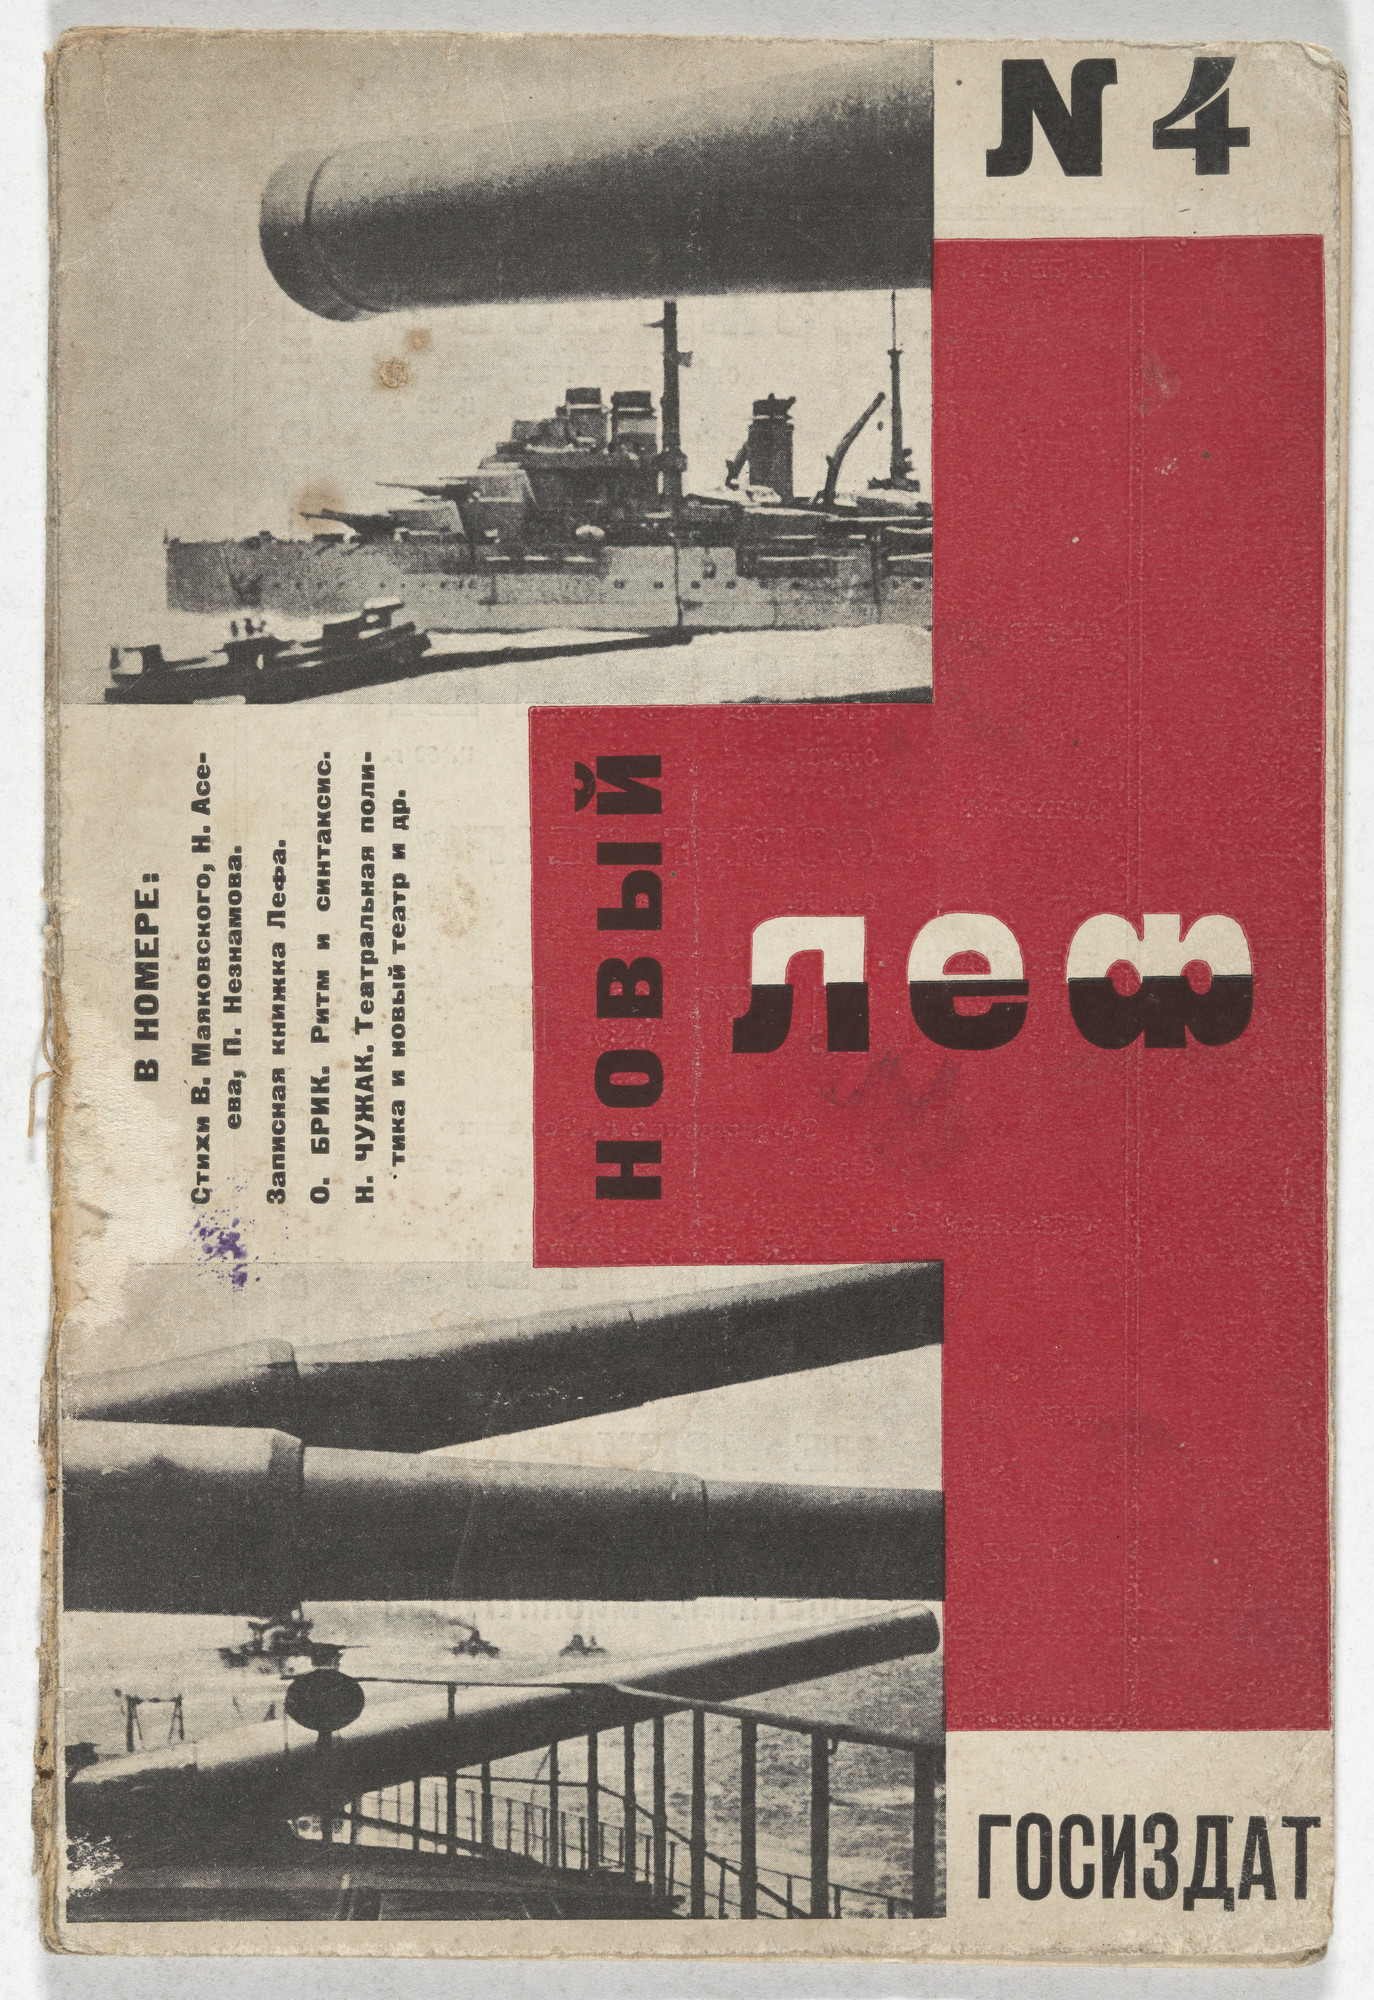 Aleksandr Rodchenko. Novyi LEF. Zhurnal levogo fronta iskusstv (New LEF: Journal of the Left Front of the Arts), no. 4. 1927